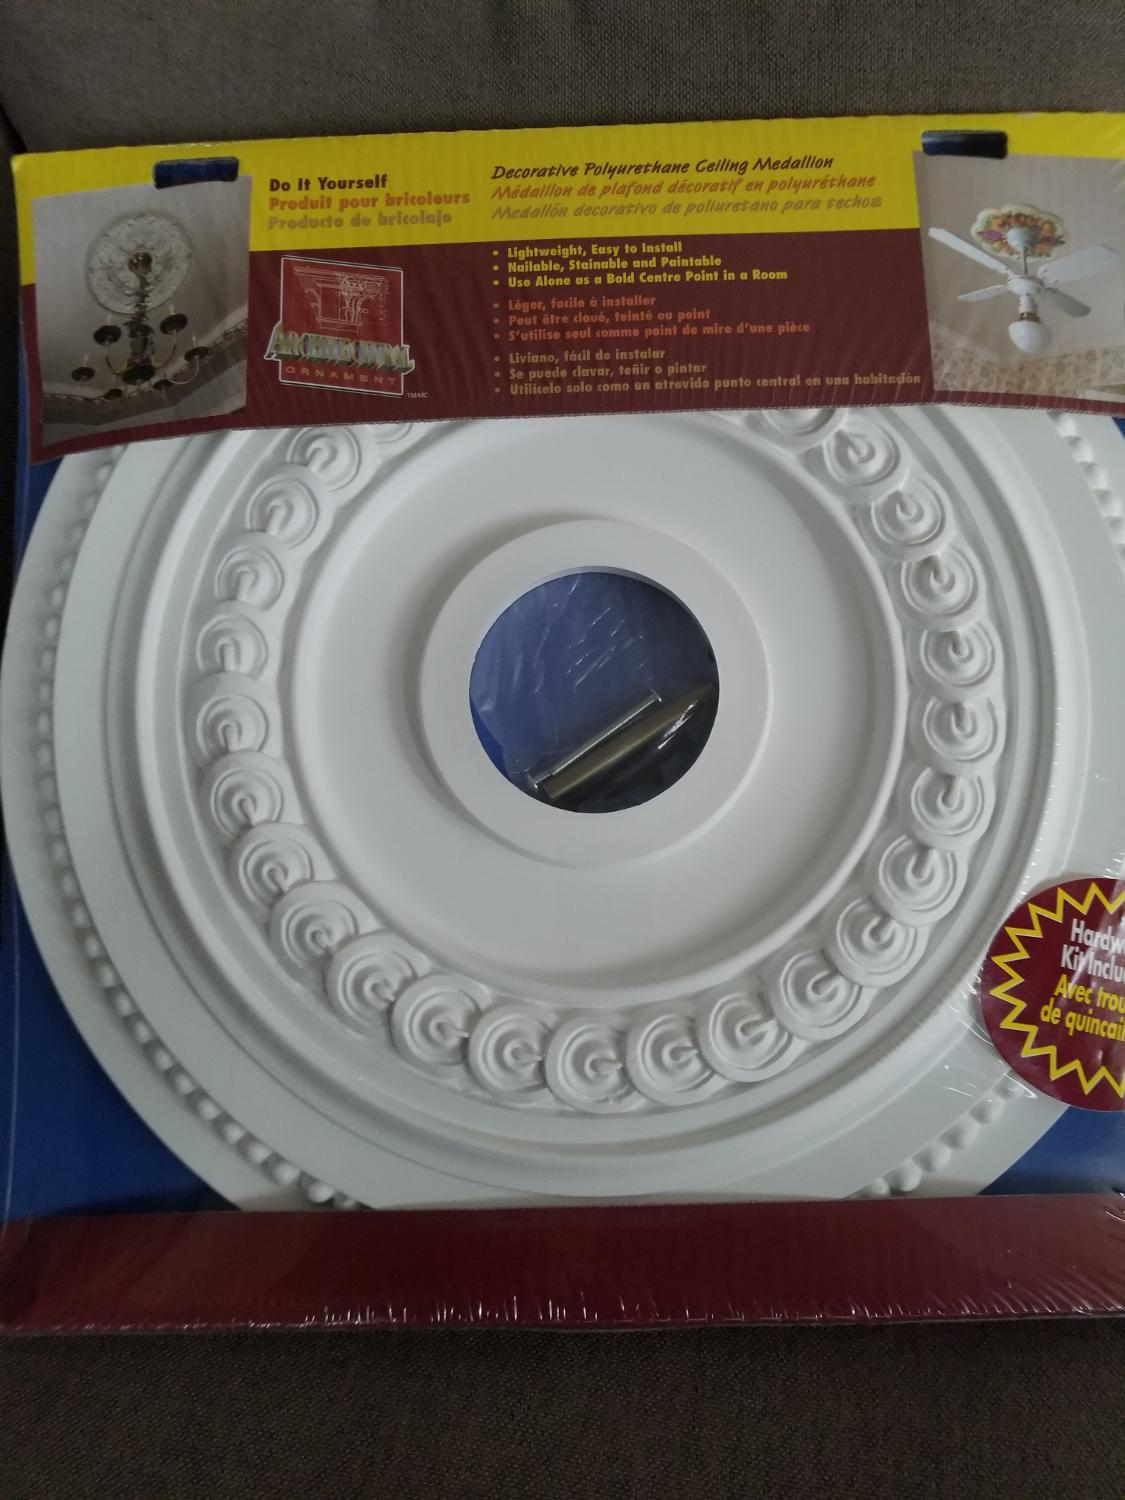 "Point De Centre Plafond 18"" ceiling medallion brand new in package."